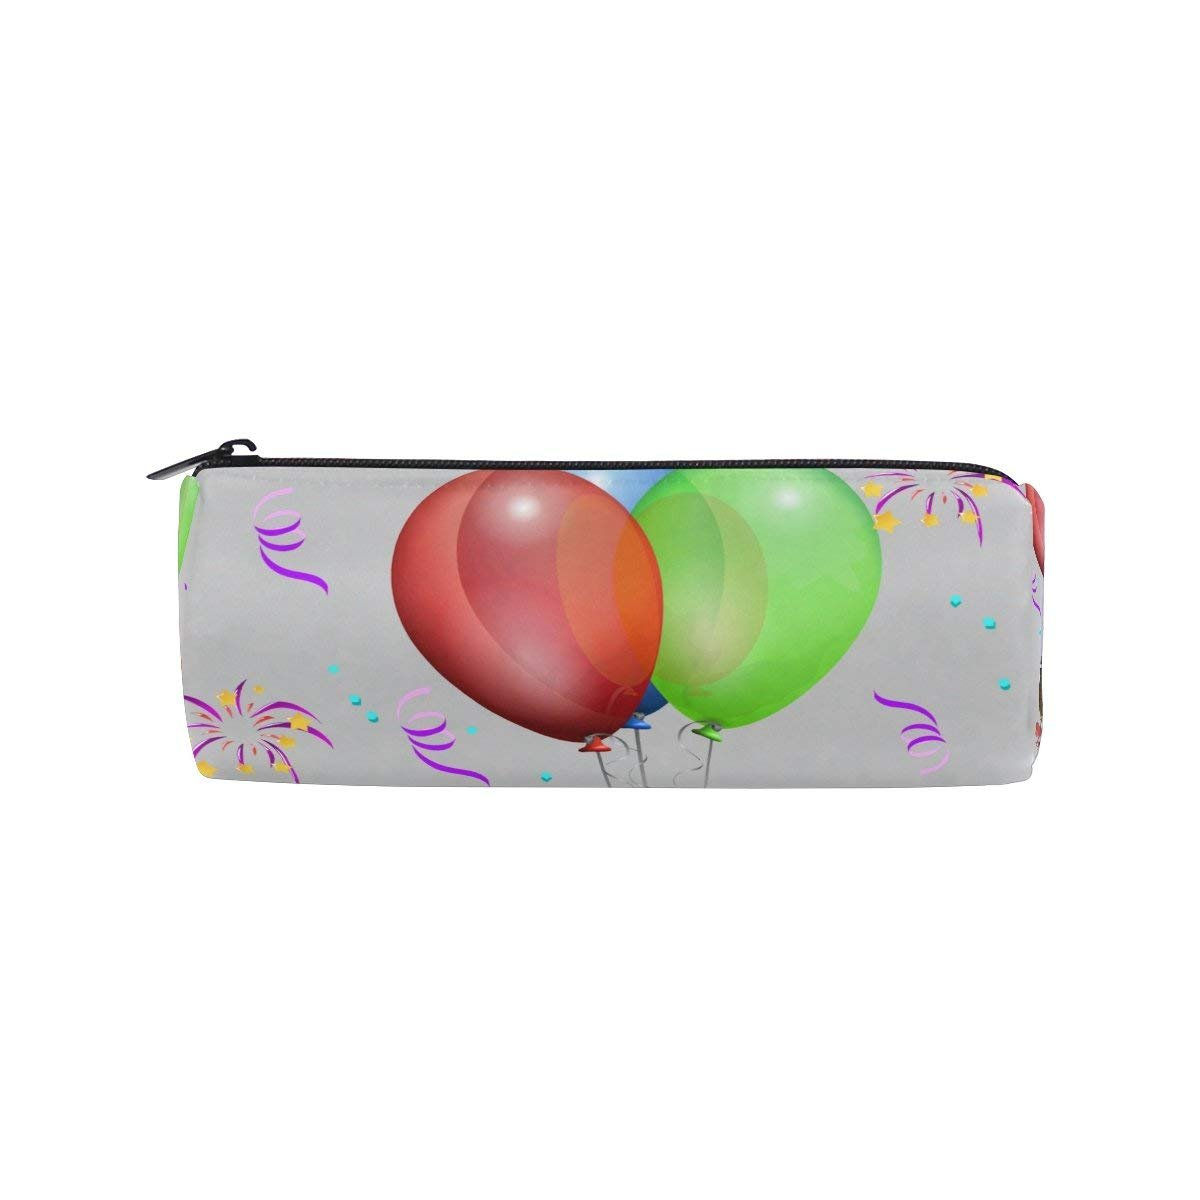 Balloon Liqueur Glasses Gift Round Pencil Case Stationery Bag Zipper Pouch Pencil Holder